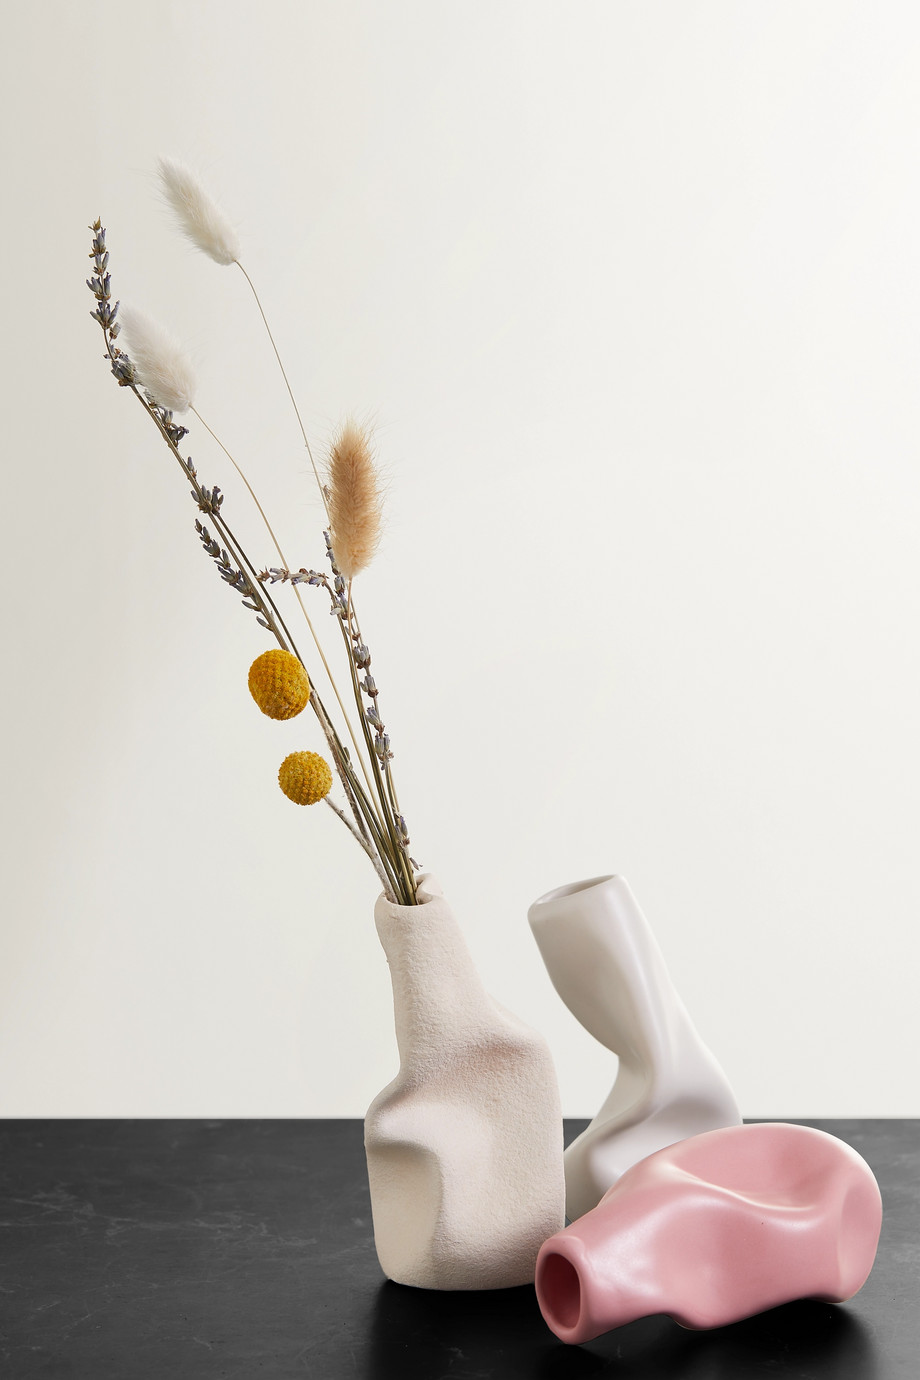 Completedworks + Ekaterina Bazhenova Yamasaki Seam, Solitude and Wake set of three ceramic vases